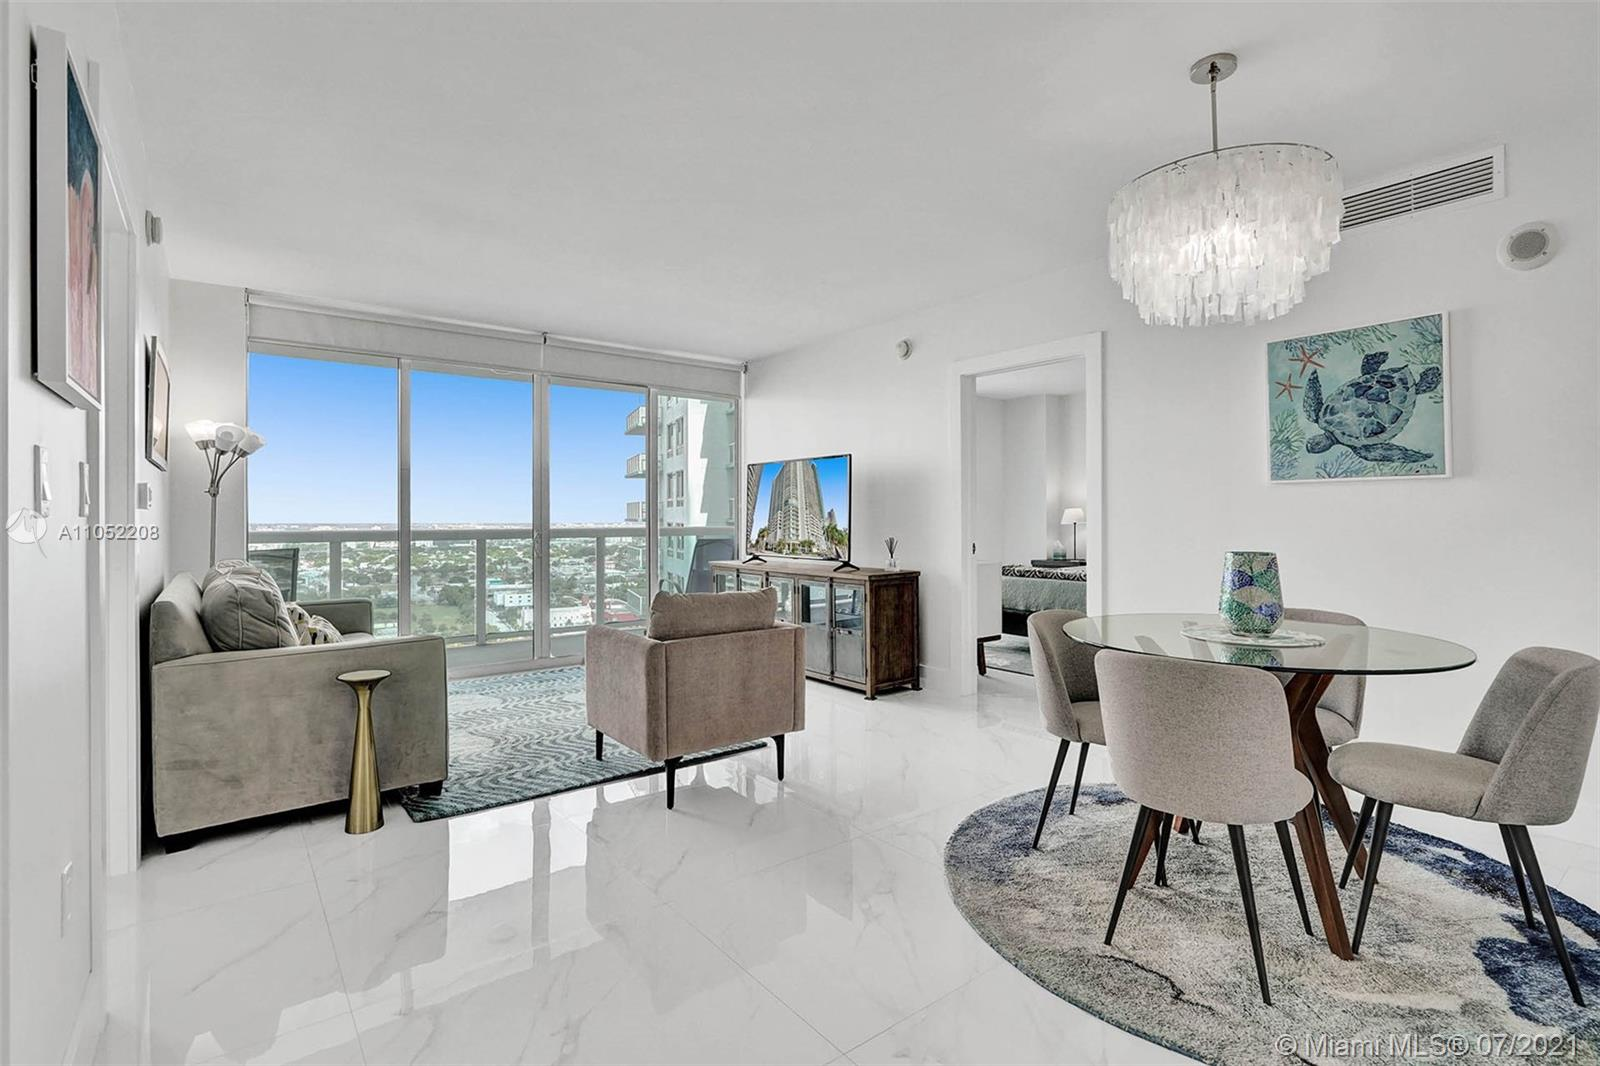 Substantially remodeled luxurious unit on the 28th floor  at the 1800 Club Condo  in the heart of Edgewater. This 2 bedroom and 2 bath features white porcelain floors throughout, modern kitchen, quartz counter tops, stainless steel appliances, custom master bedroom walk-in closet. No details have been spared in this unit with custom design finishes throughout. Other  Upgrades include: custom kitchen with quartz countertops, custom bathroom  vanities, showers, recessed lighting, Tankless Water Heater, custom doors, and more. 1 parking space deeded, large storage. Full amenities building, state of the art gym sauna $ steam room, water included in low HOA. Walk to Margaret Pace Park. 2 blocks to people Mover, 5 Minutes to Downtown Miami,  The design District, Midtown, Wynwood, Miami Beach.